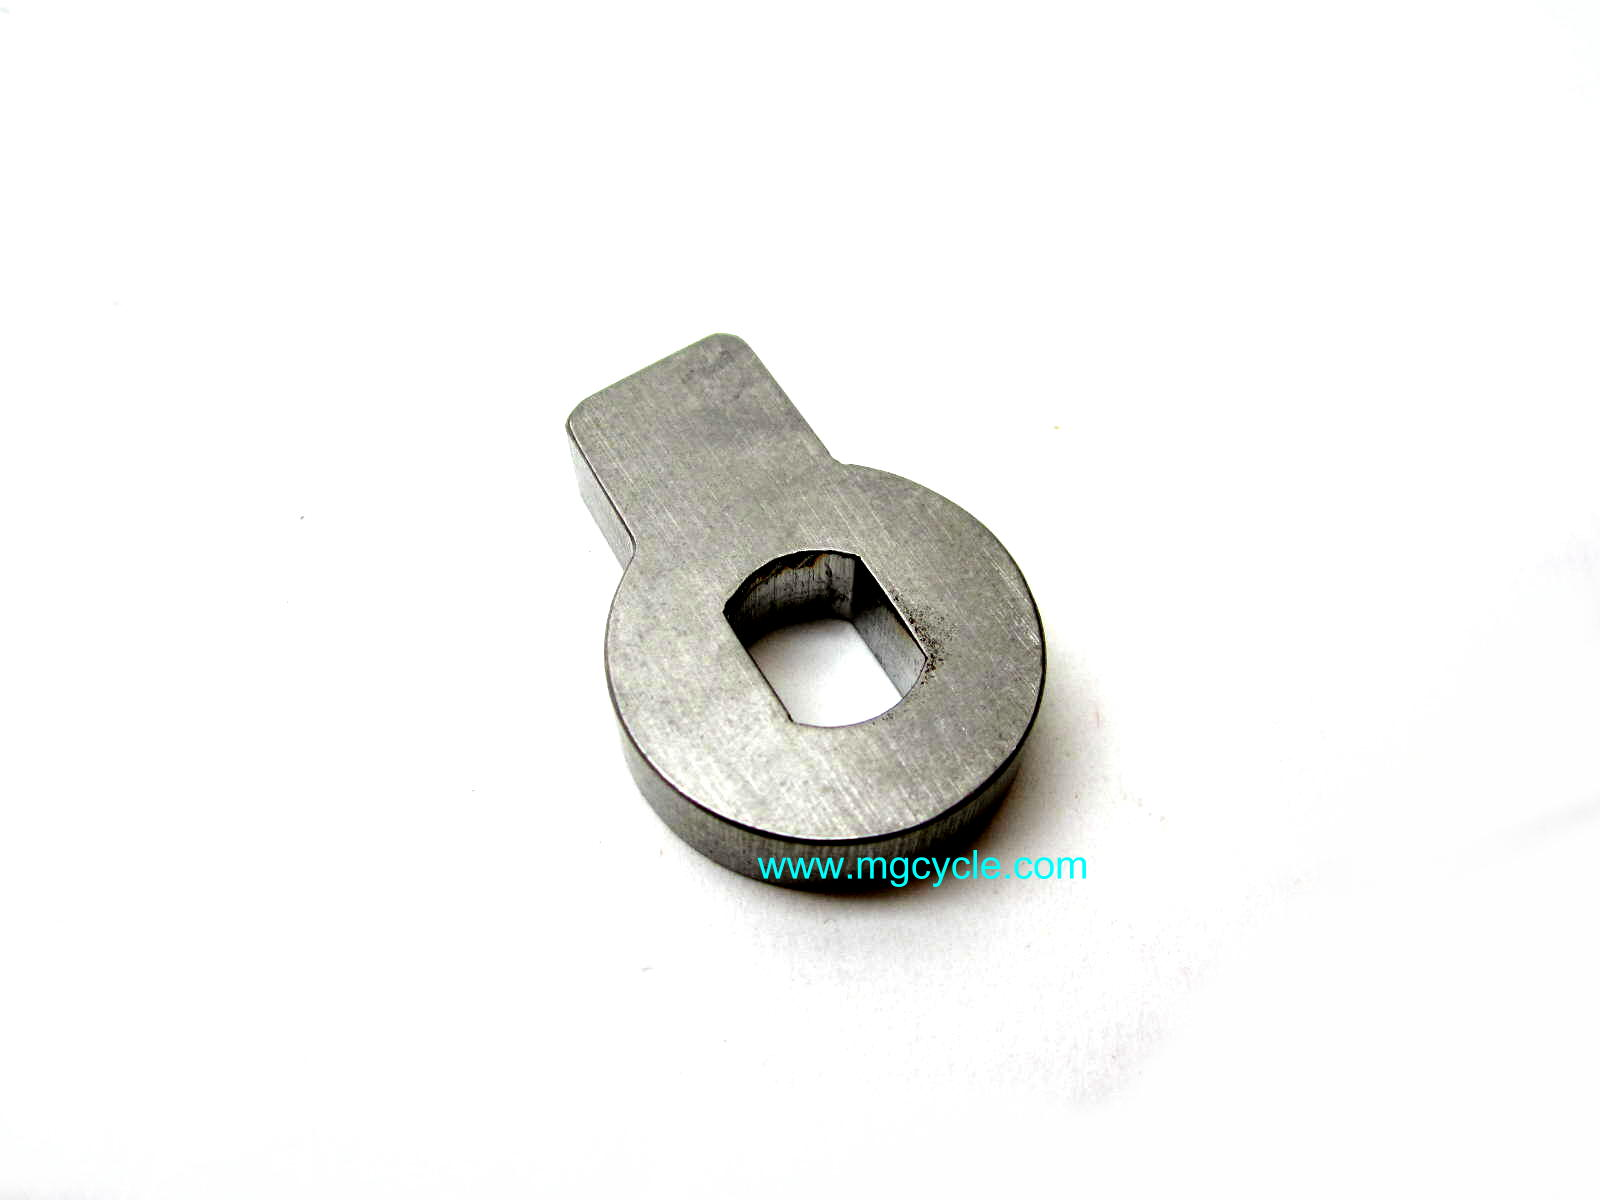 New improved stainless locking lug for side stands GU03432740